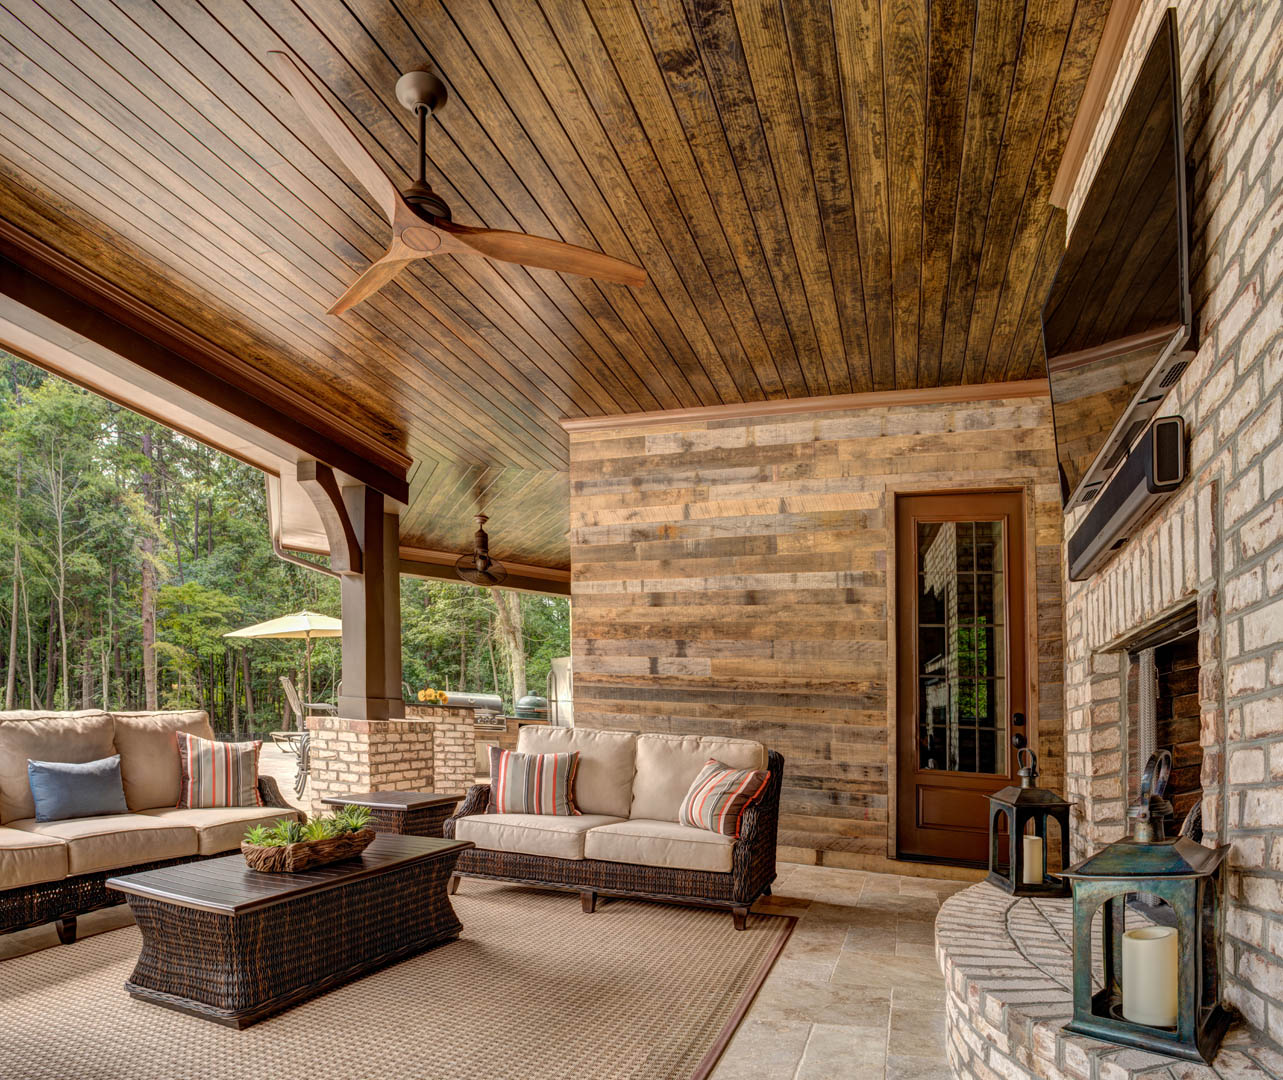 Pano7-Outdoor Living 4